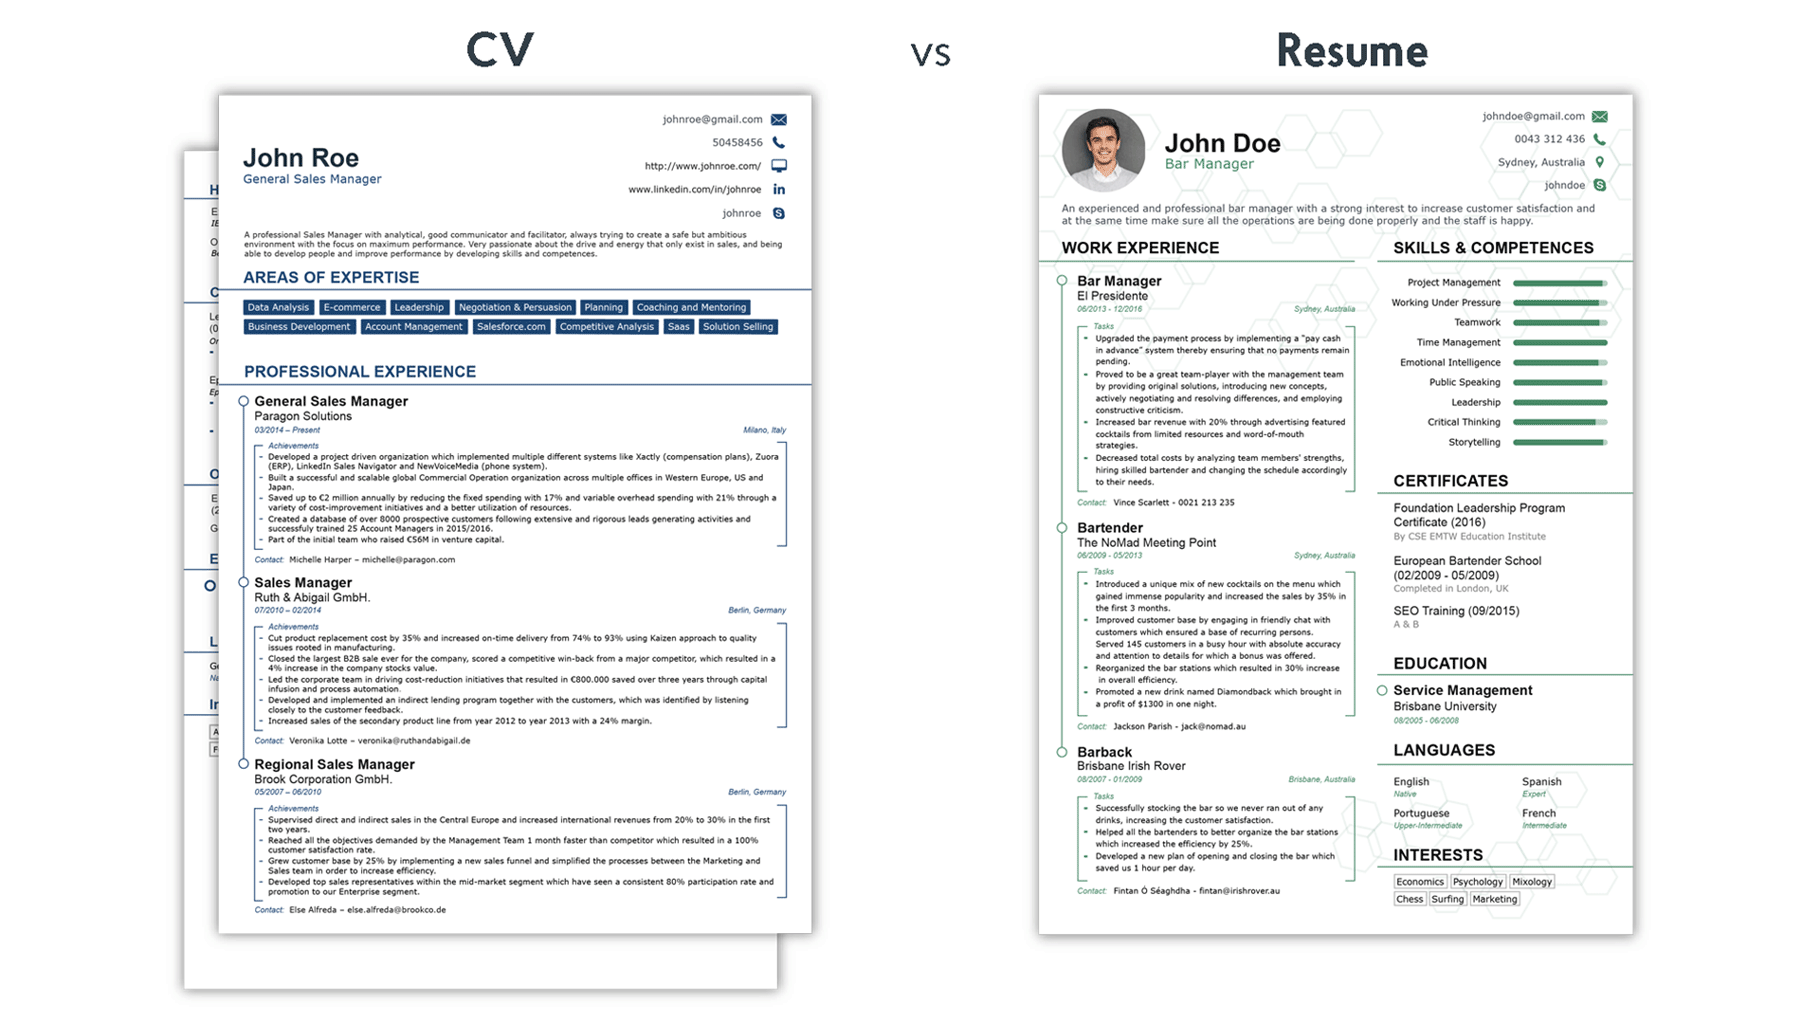 resume vs cv difference - Selo.l-ink.co